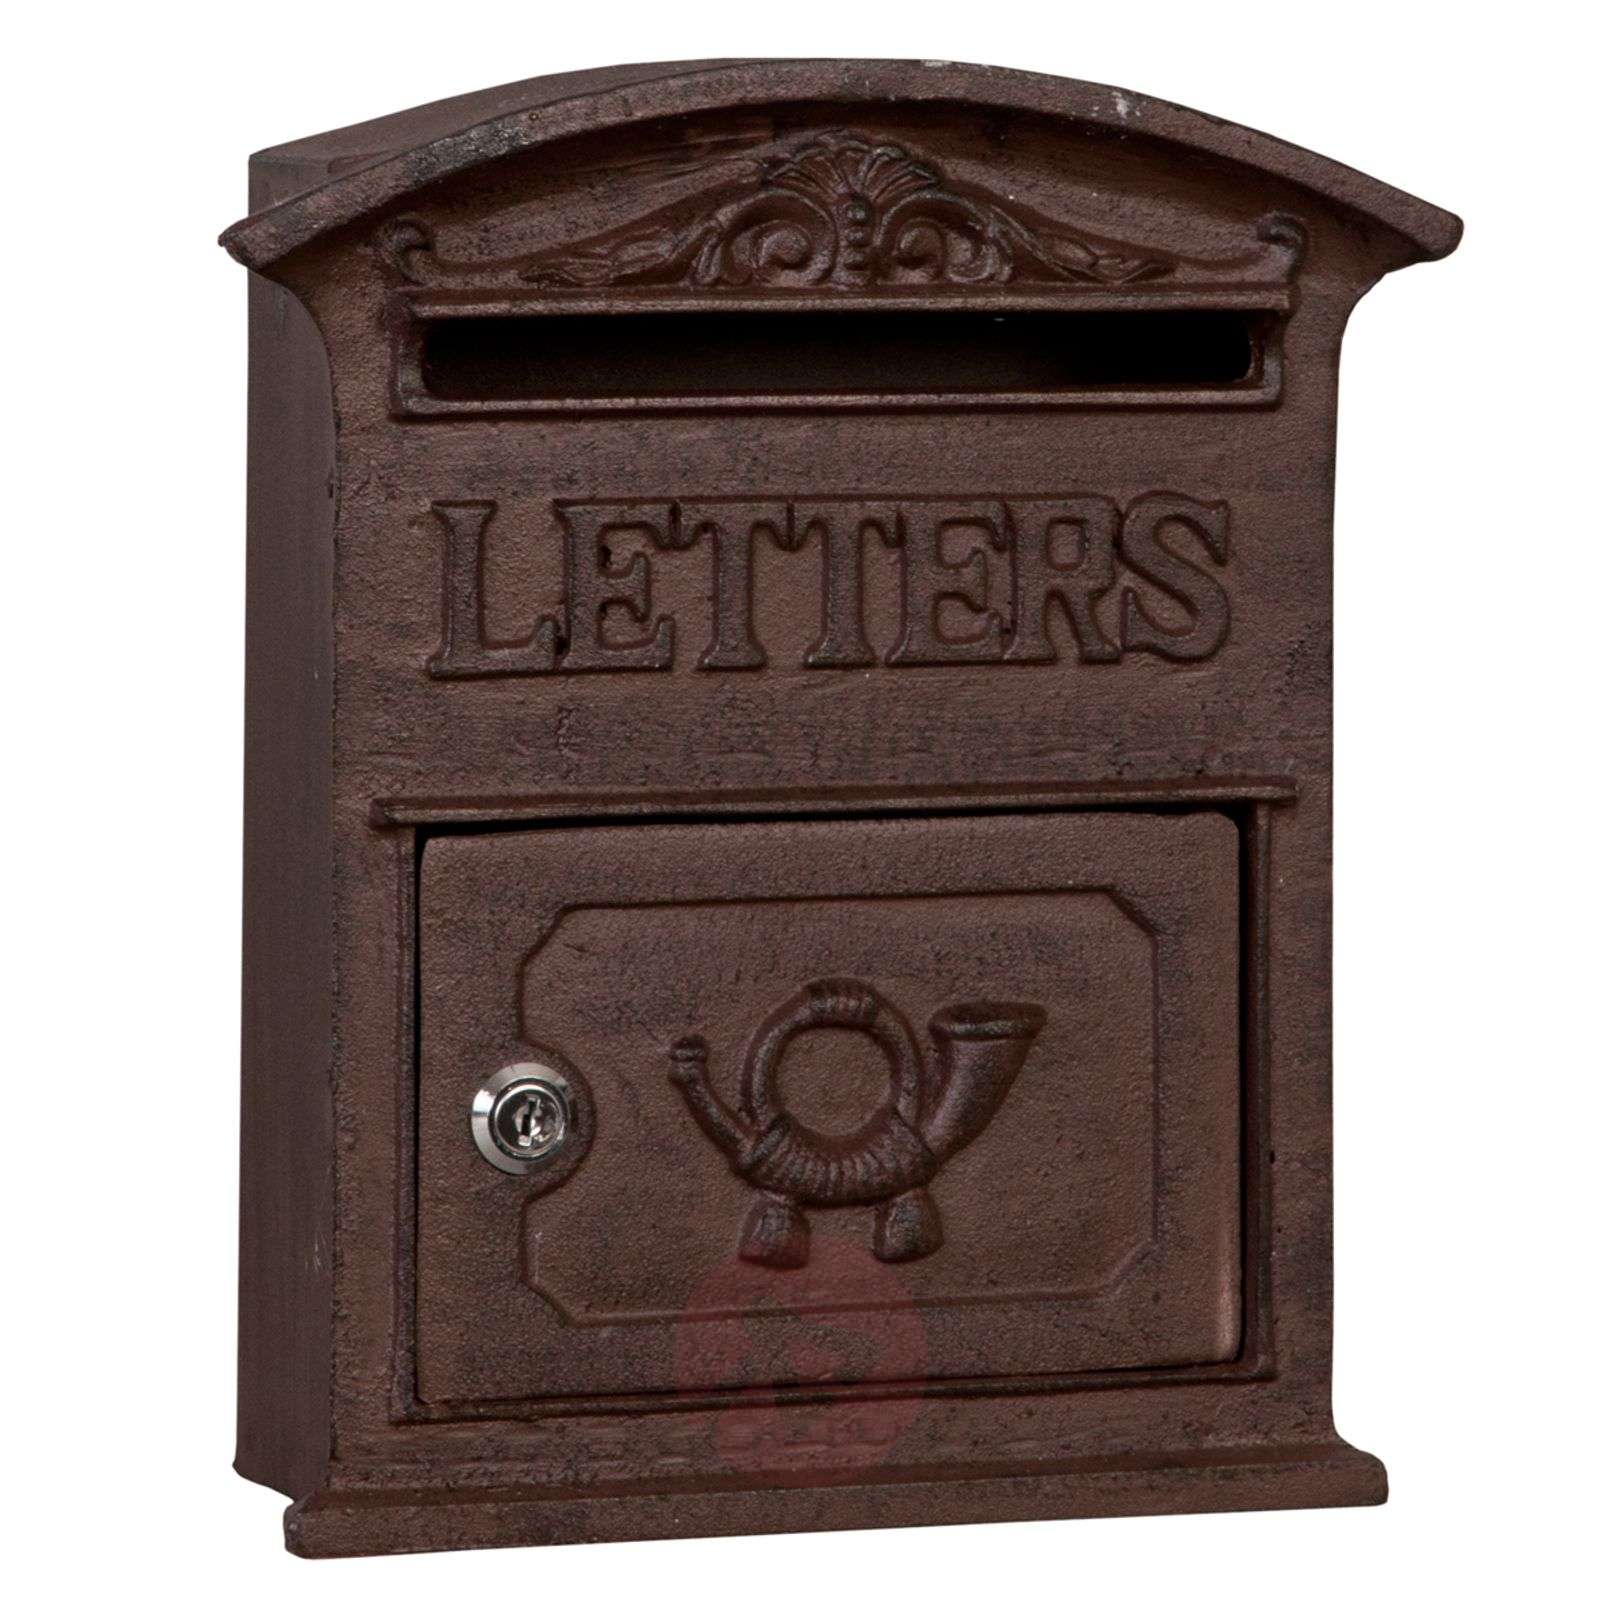 Antiko wonderful cast iron letter box-6064285-01